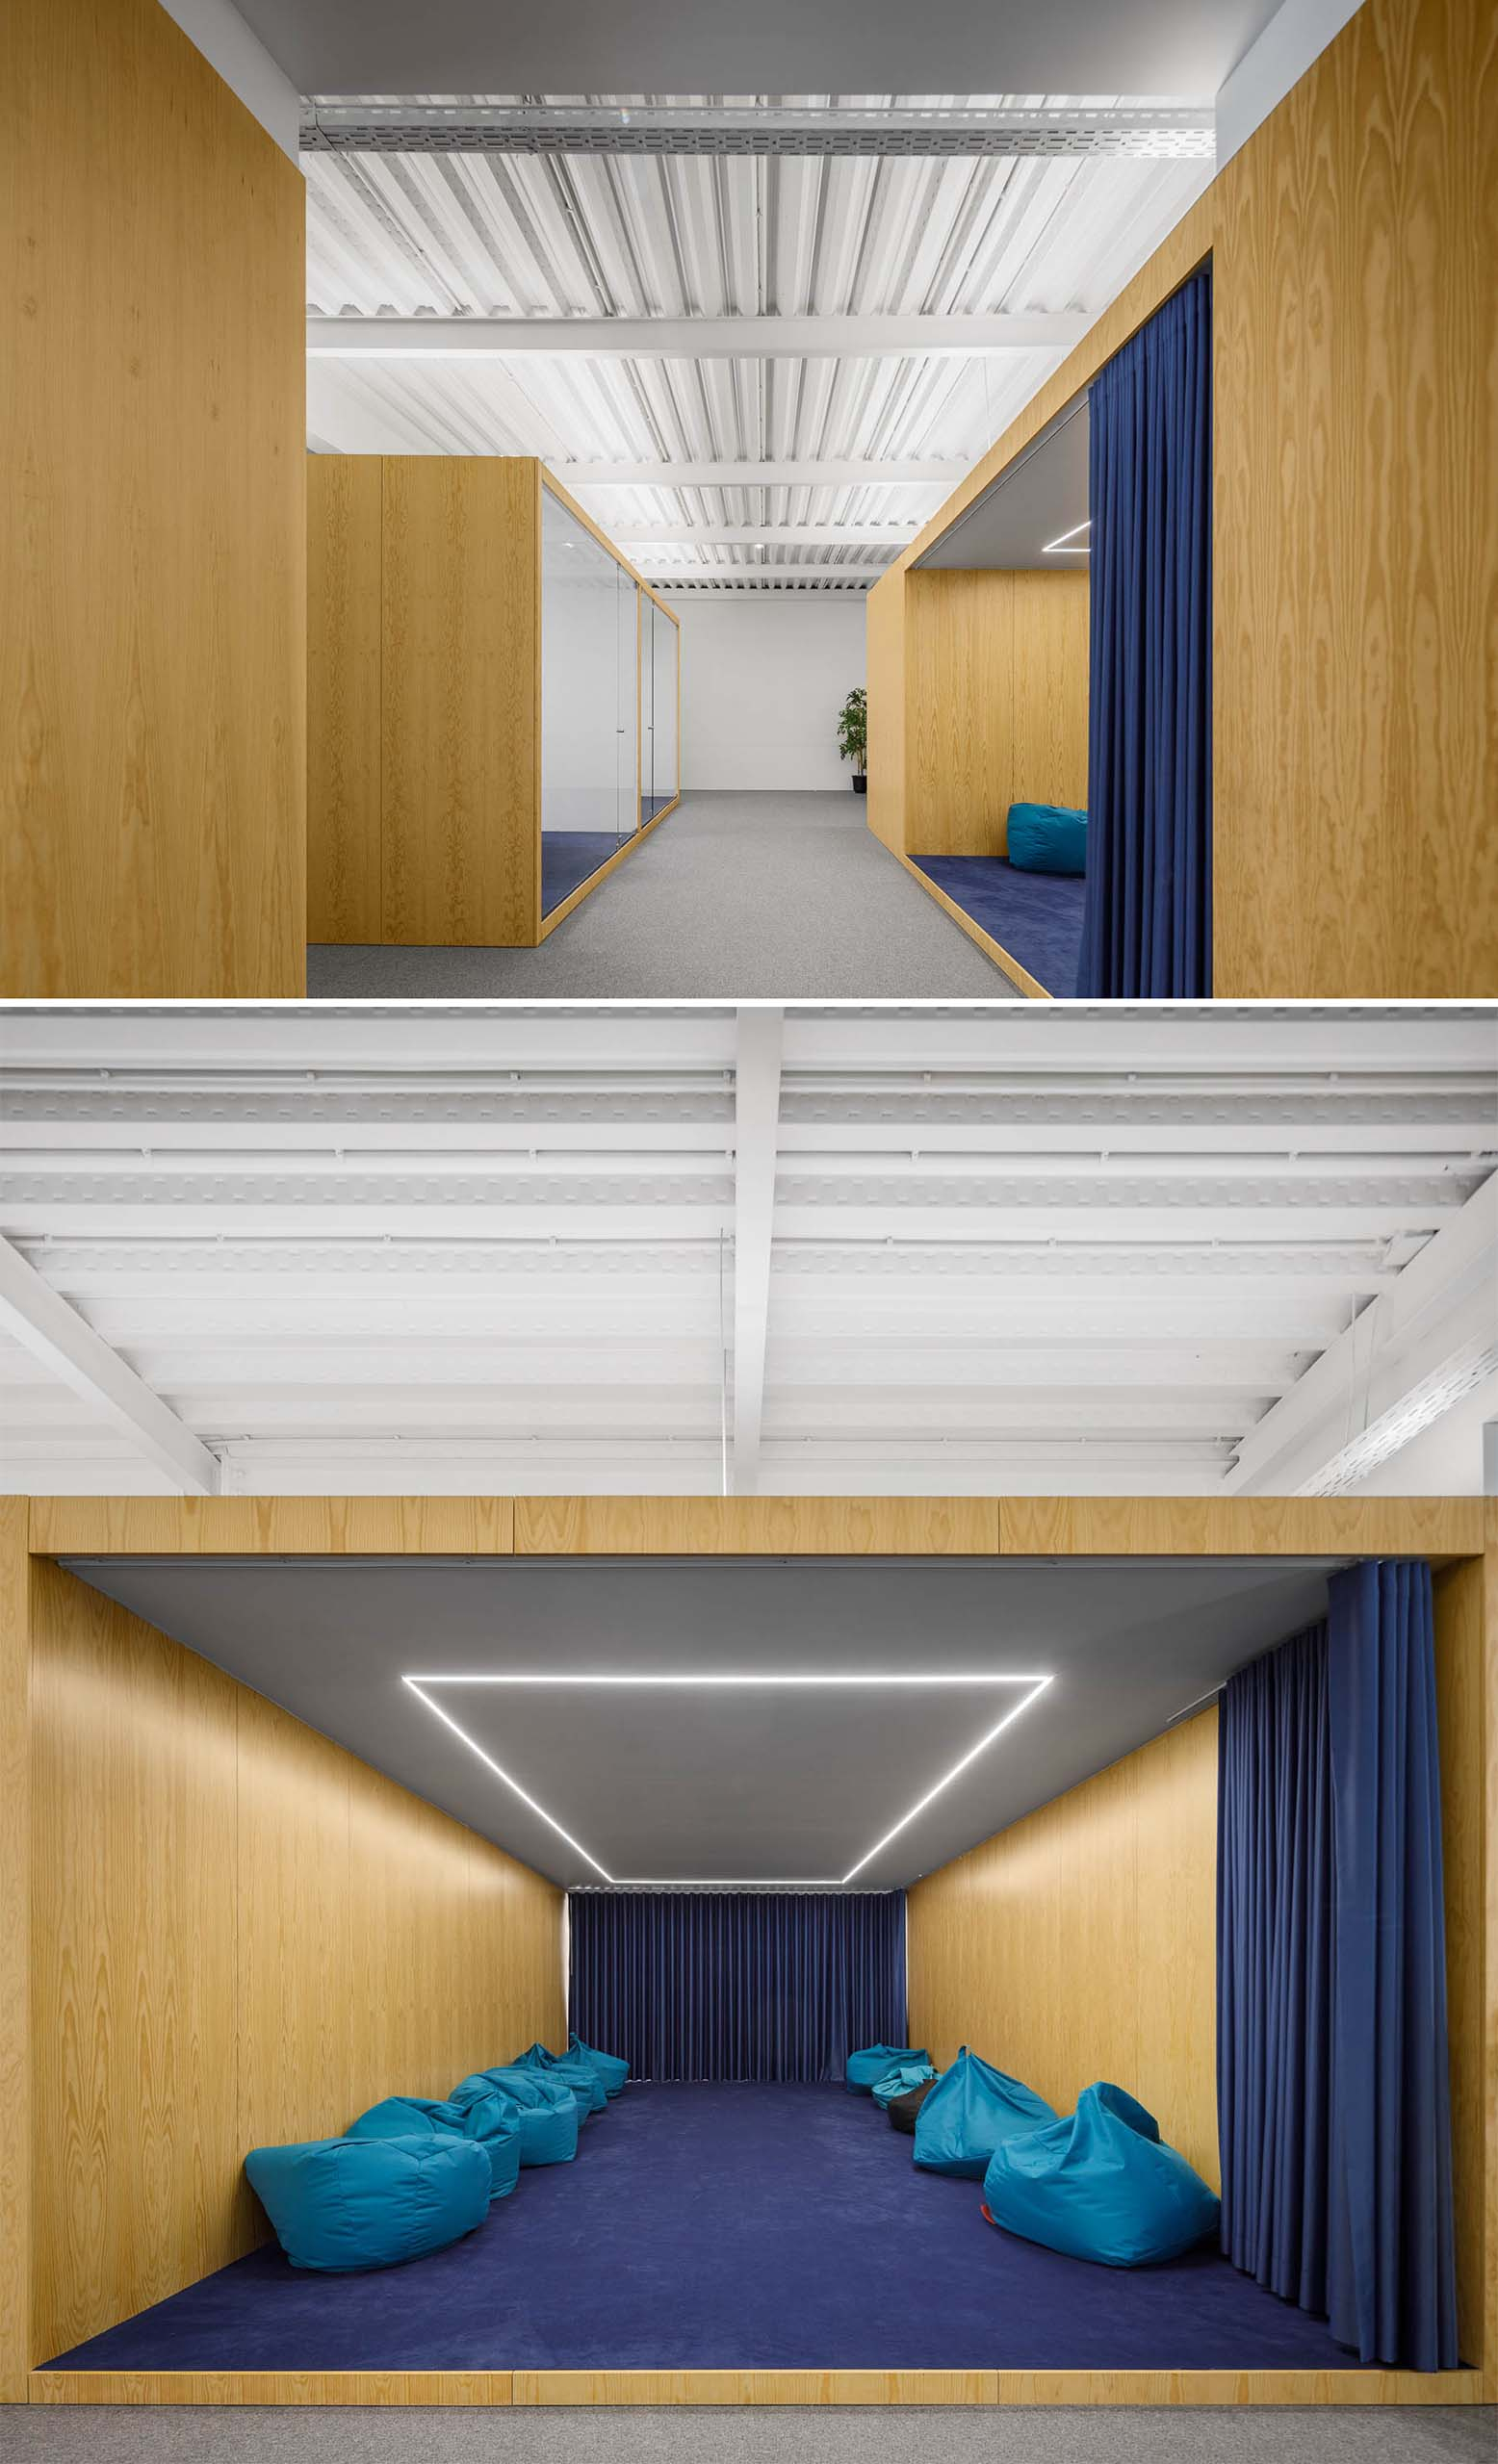 A large meeting room with a blue curtain that's filled with beanbags and has LED lighting in the ceiling.